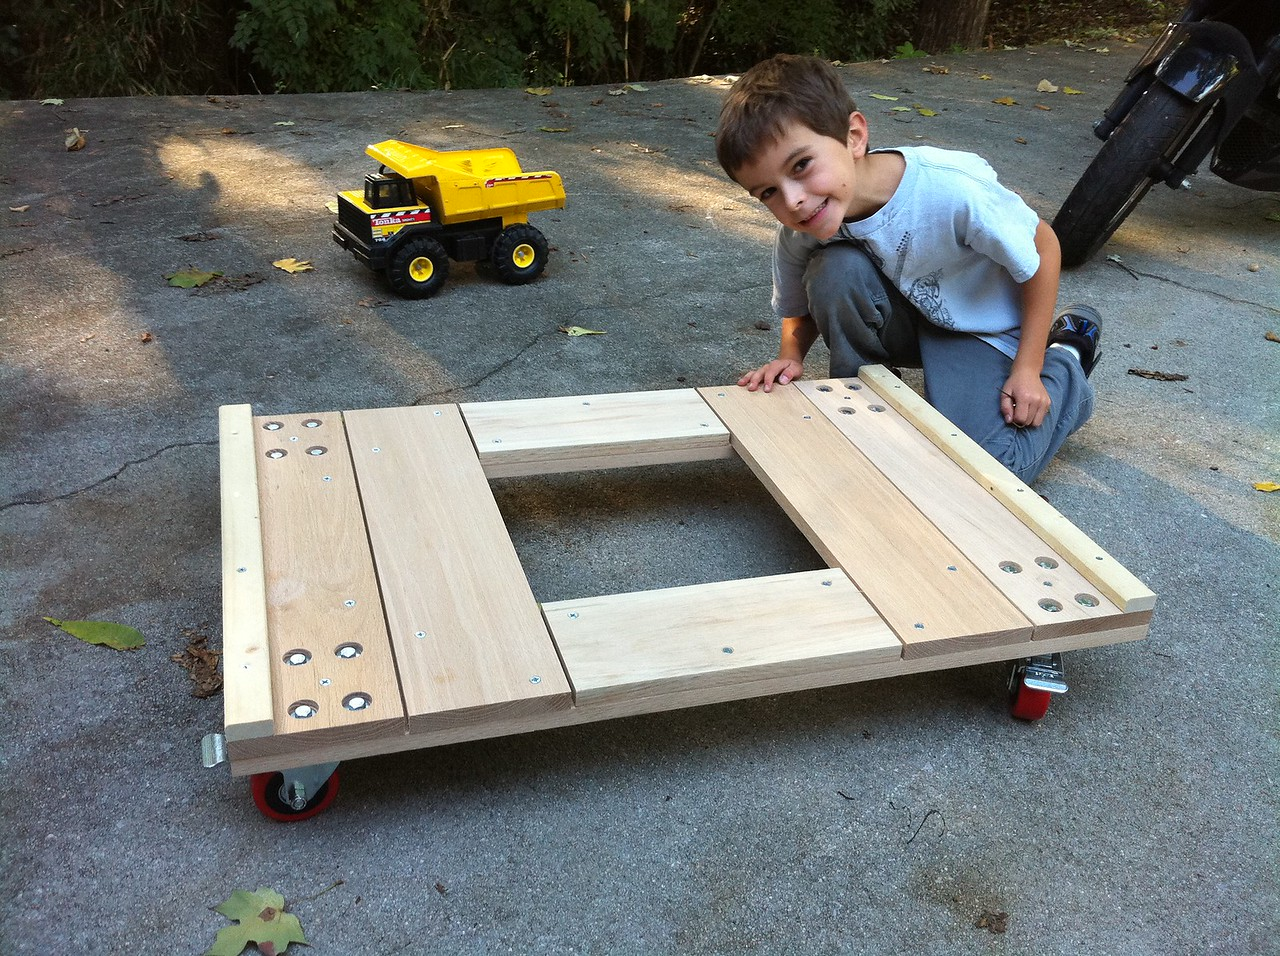 The server cabinet dolly that I built (standard construction dump truck and giant human child included for scale)